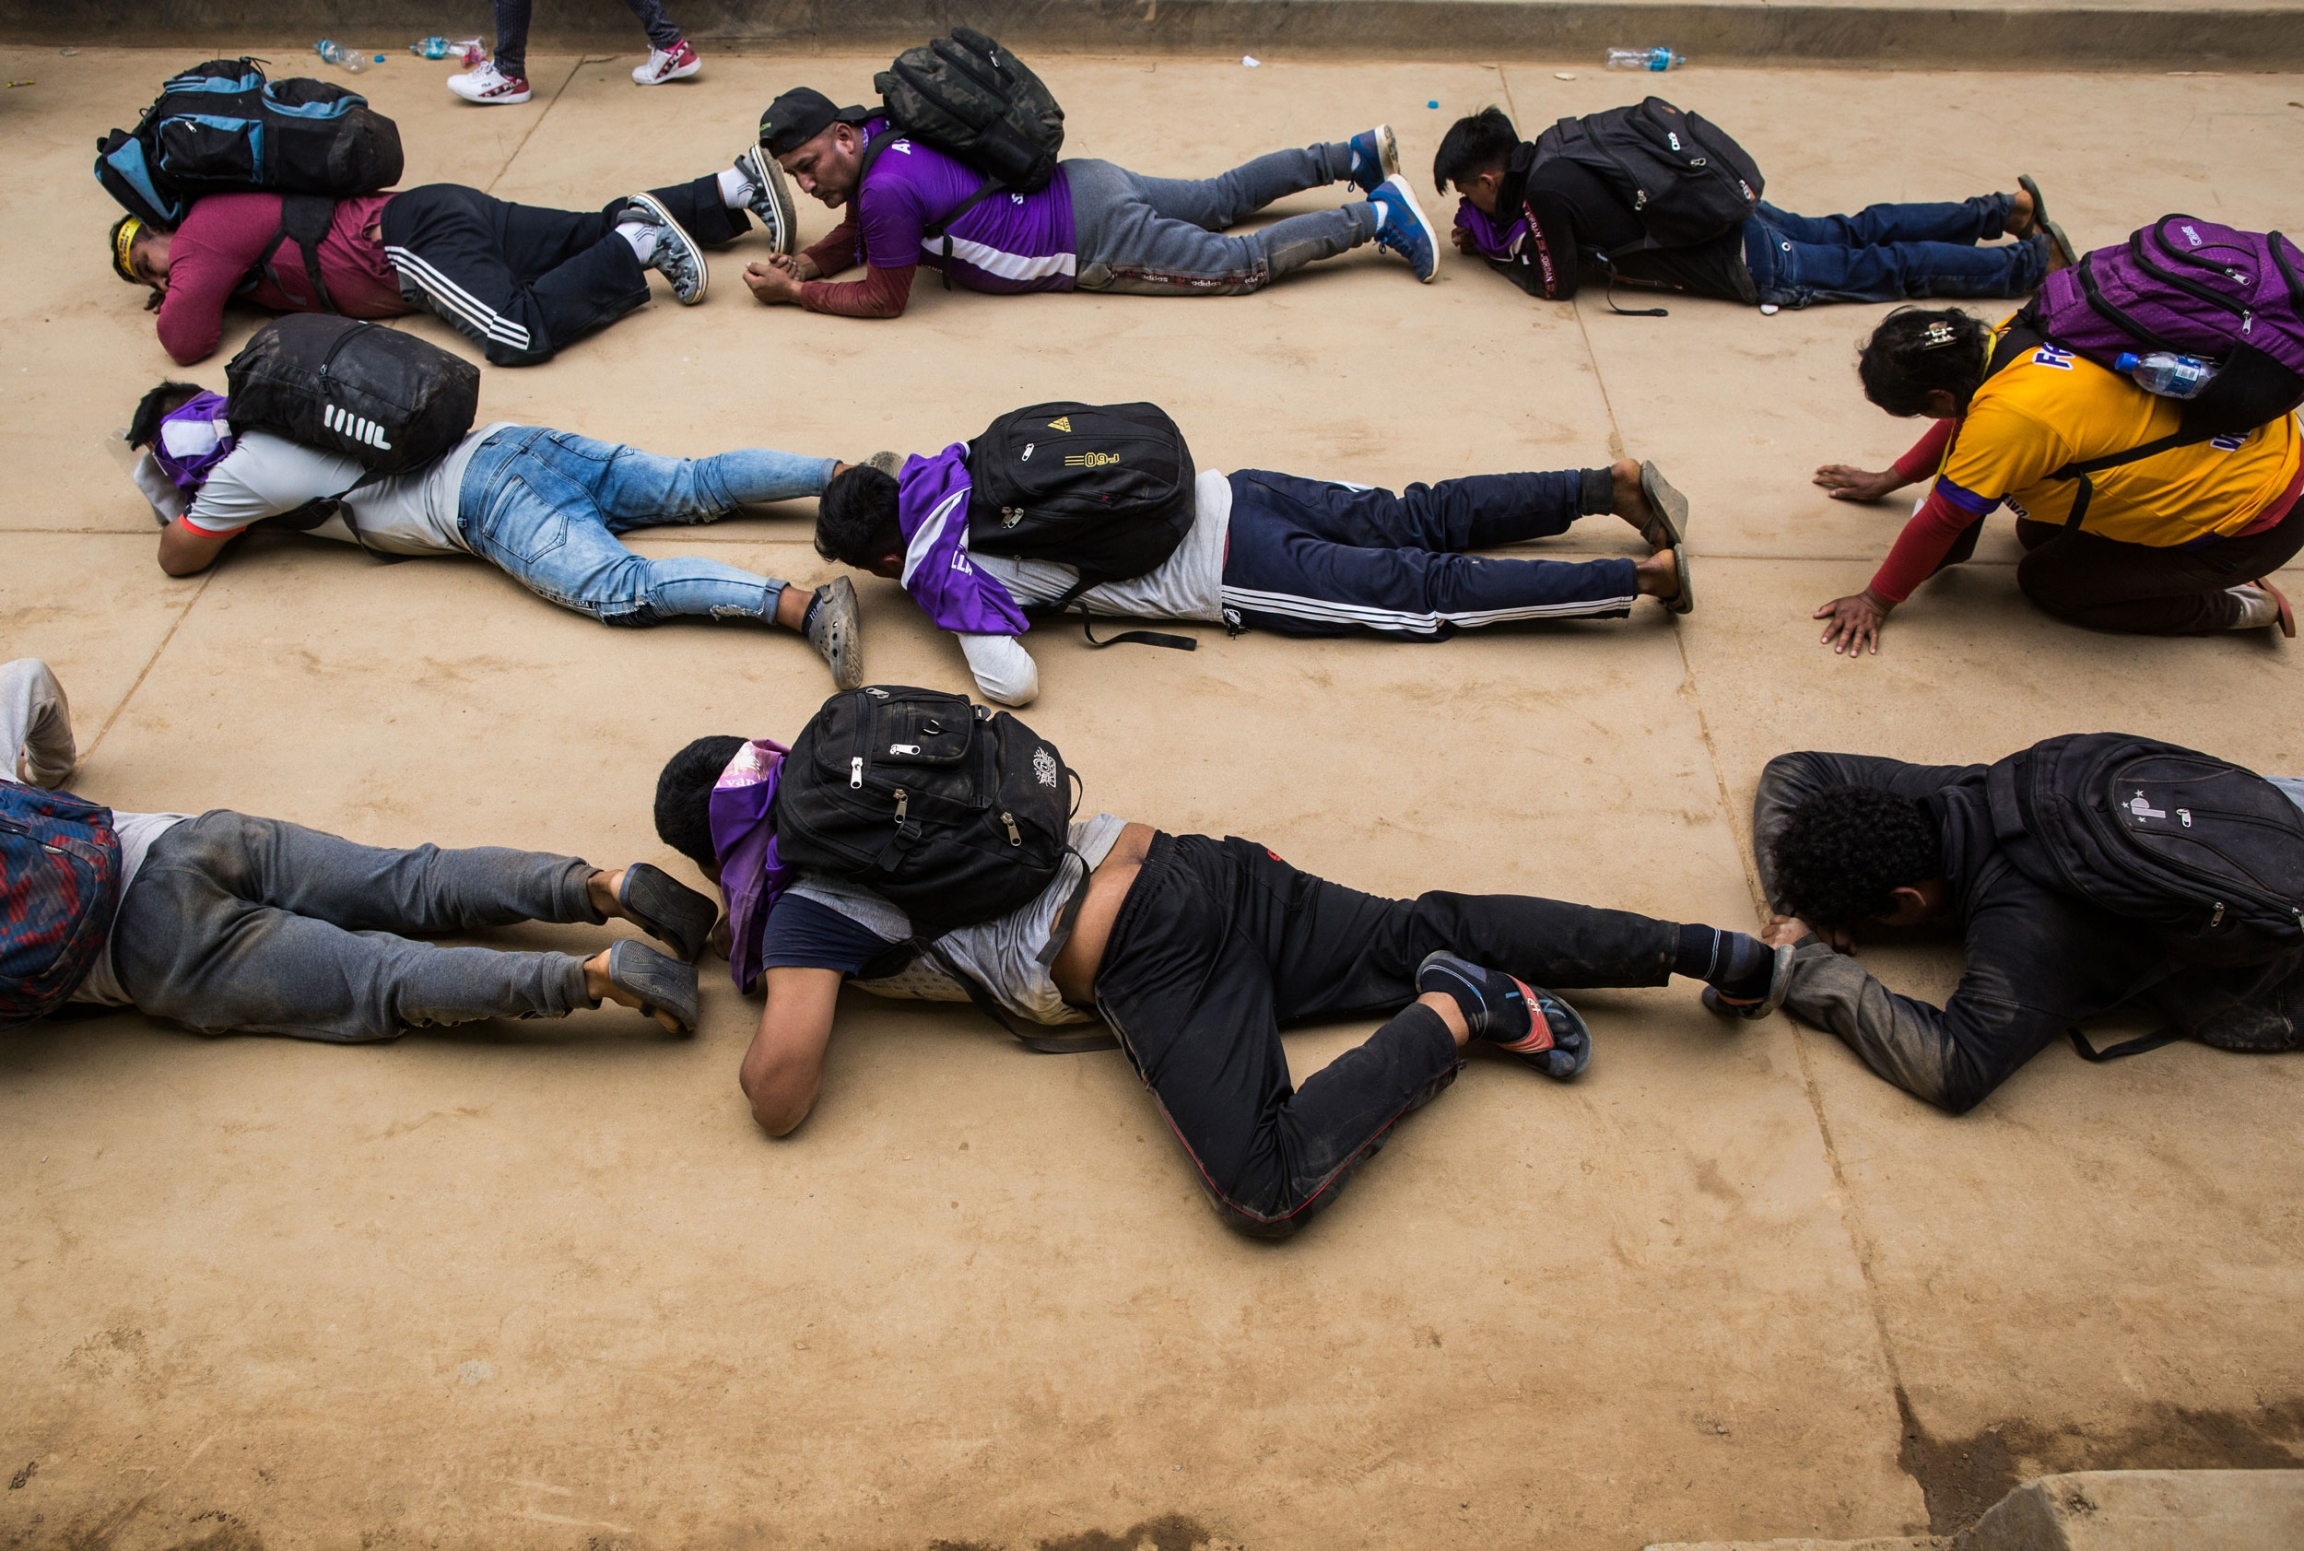 Several people are shown crawling on their stomachs on the ground and wearing backpacks.